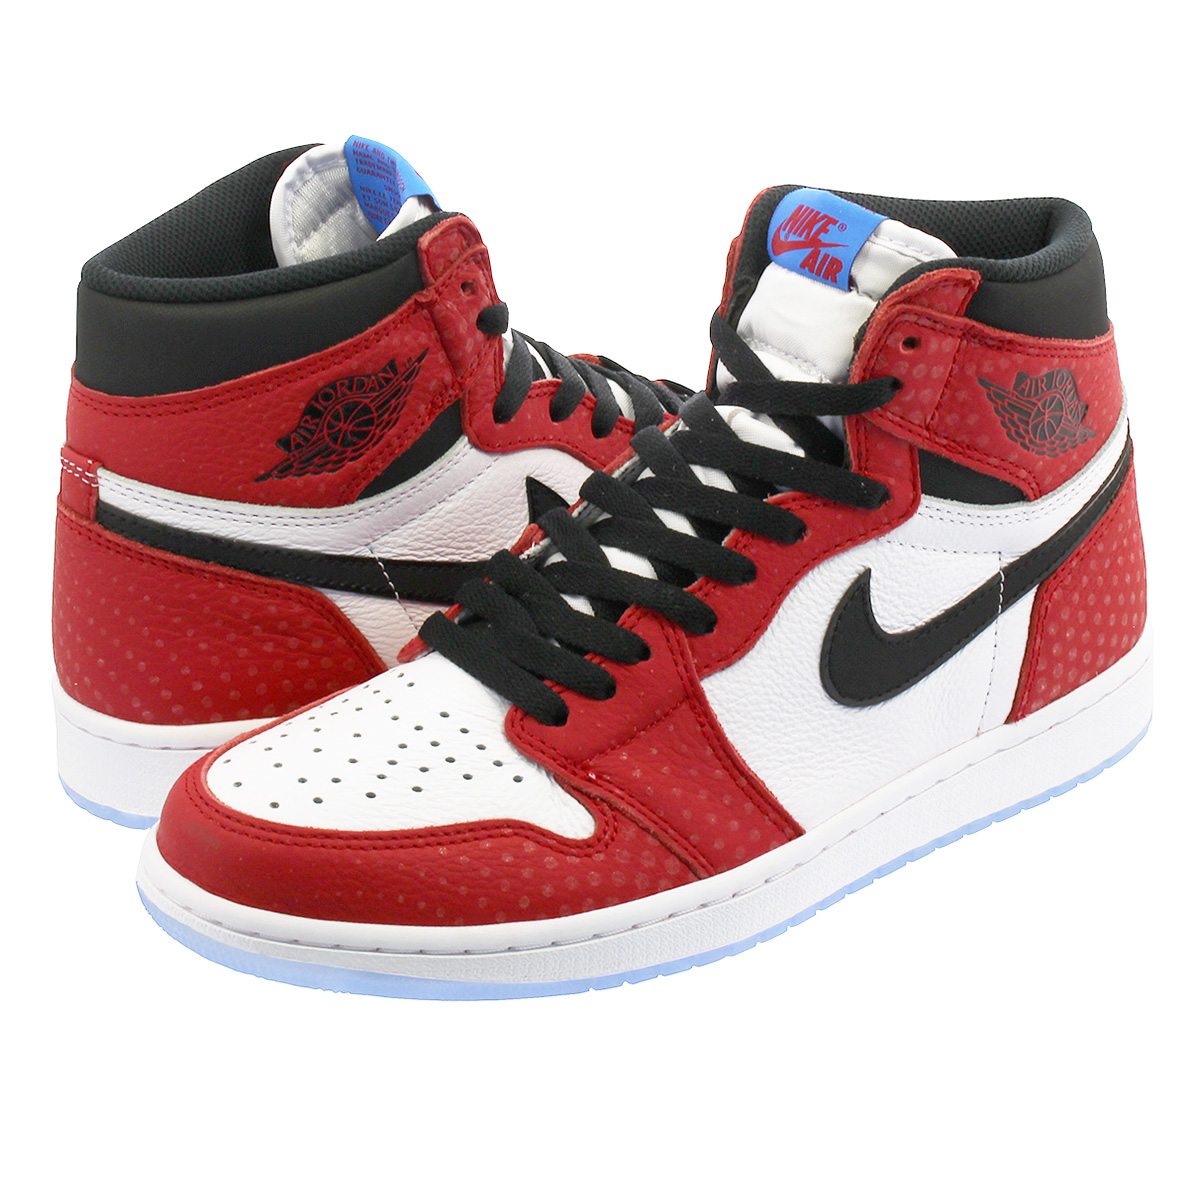 new style db861 a650c NIKE AIR JORDAN 1 RETRO HIGH OG Nike Air Jordan 1 nostalgic high OG GYM  RED/WHITE/PHOTO BLUE/BLACK 555,088-602